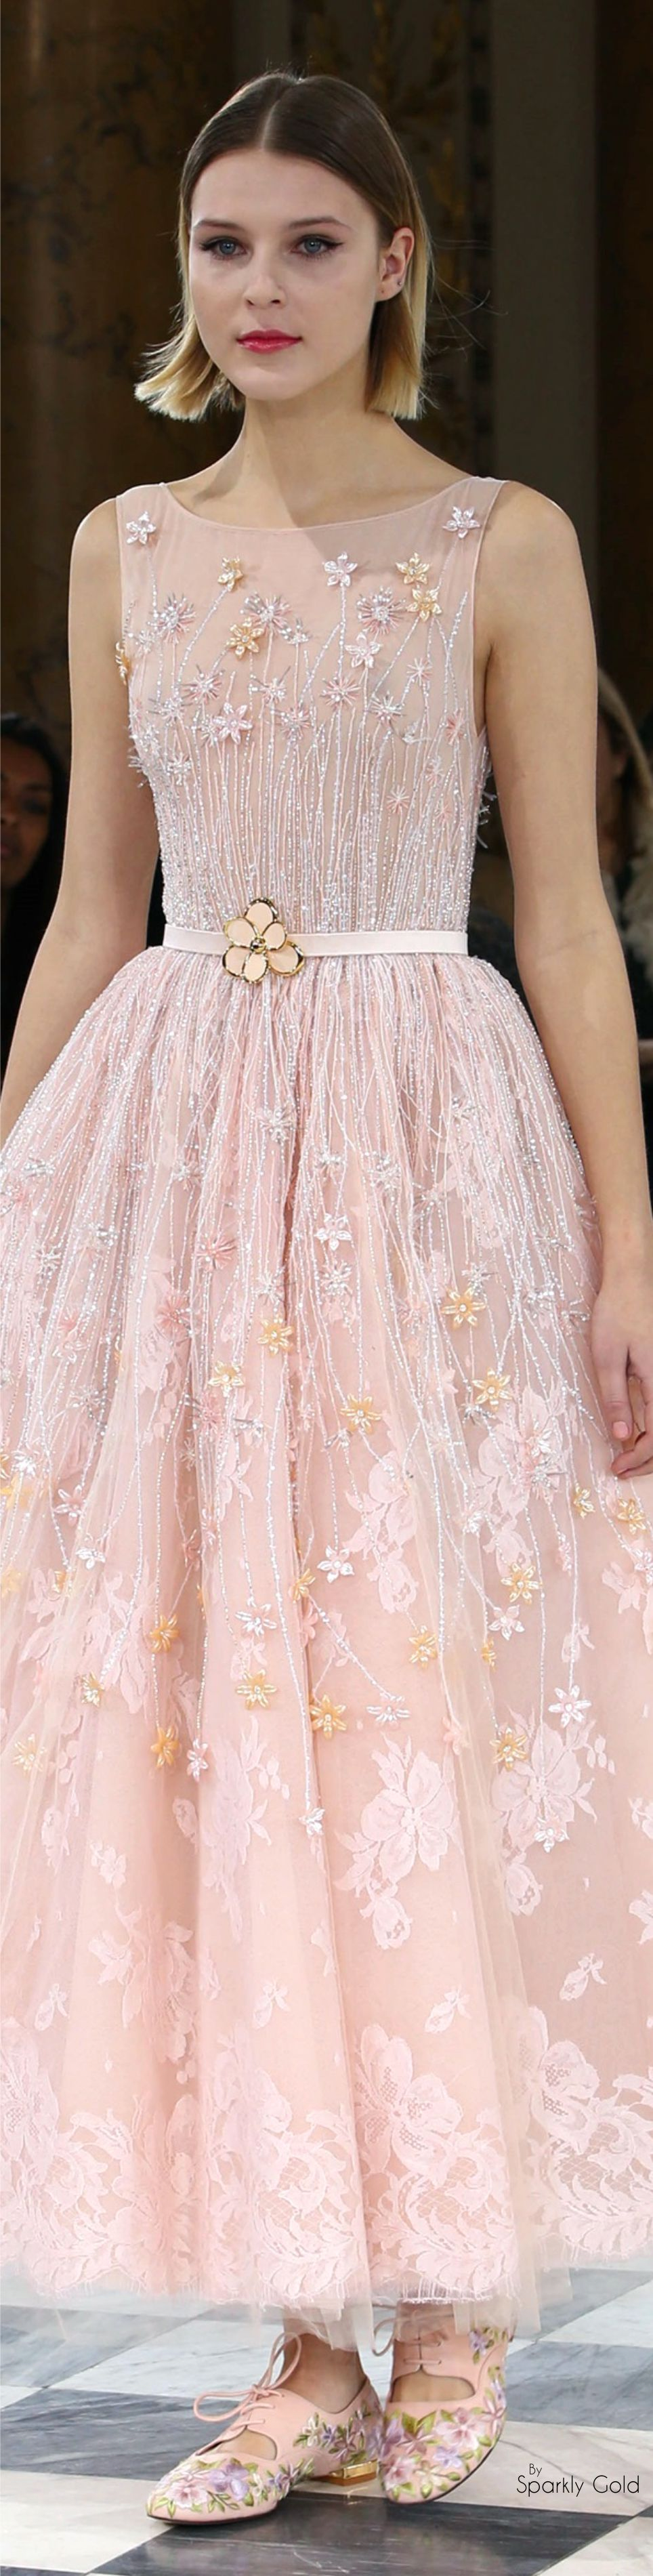 Georges Hobeika Spring 2016 Couture | Haute Couture | Pinterest ...